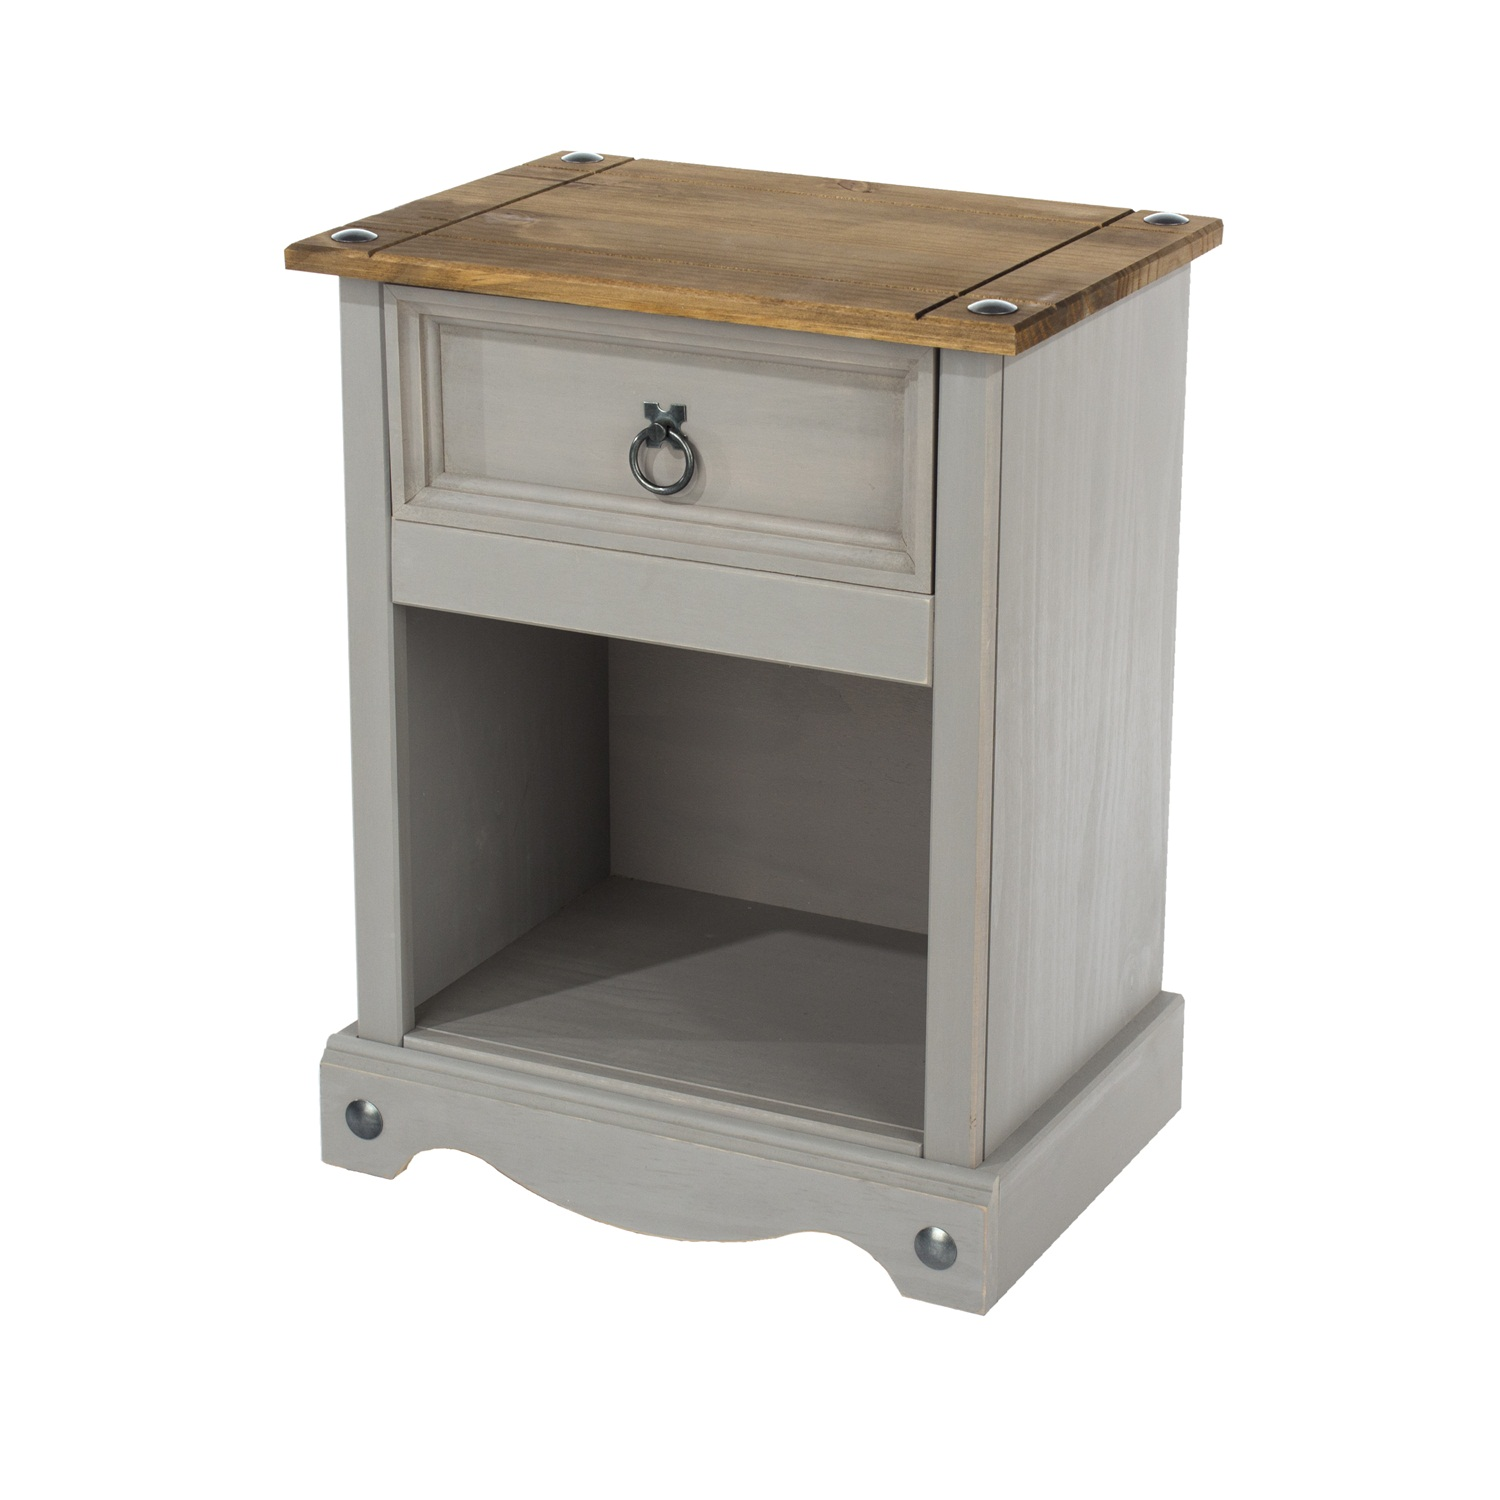 1 drawer bedside cabinet (non dovetail drawer)